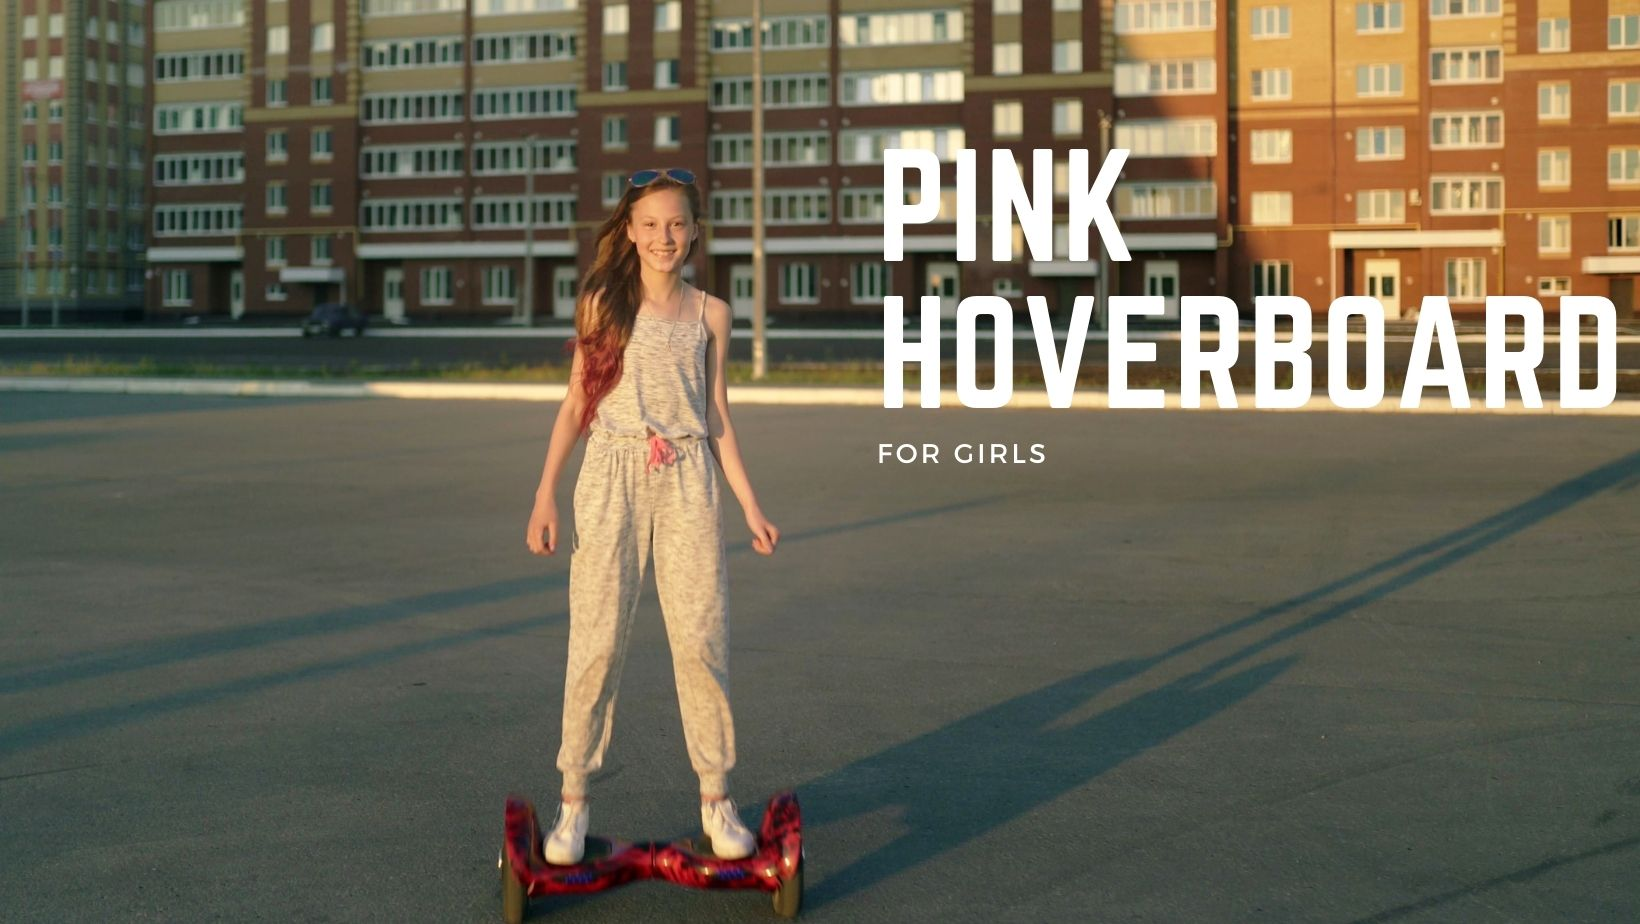 Pink Hoverbaord For Girls